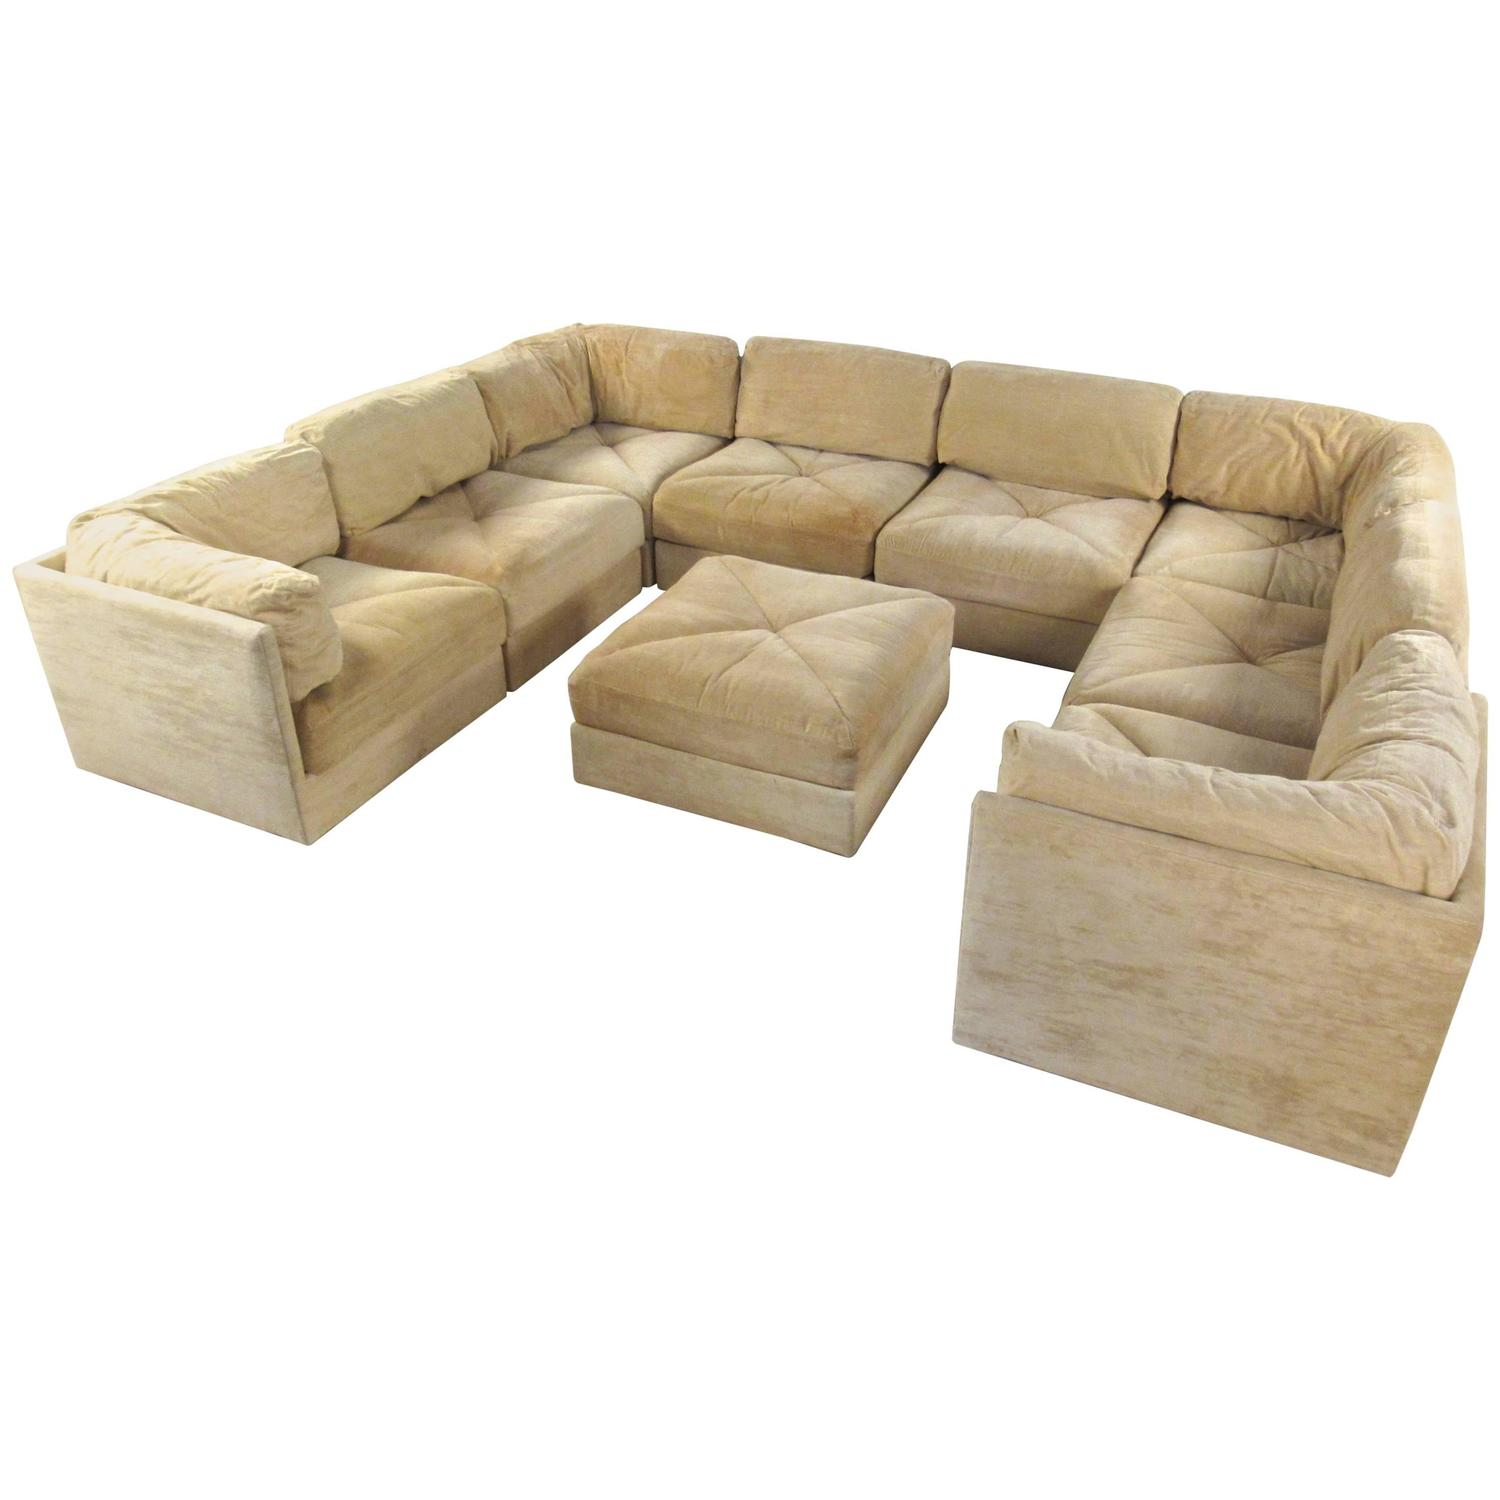 Selig Sofas 17 For Sale at 1stdibs